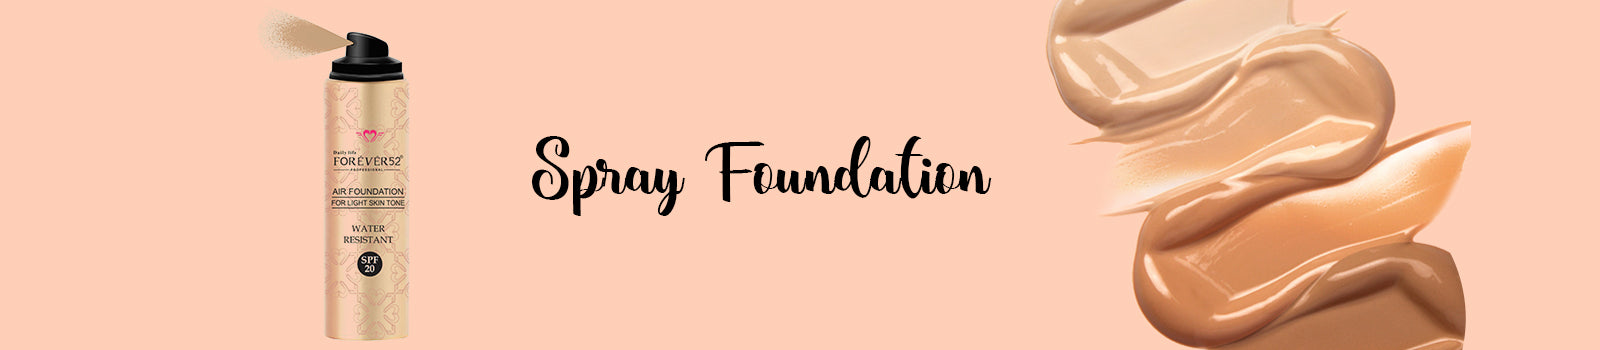 Spray Foundation